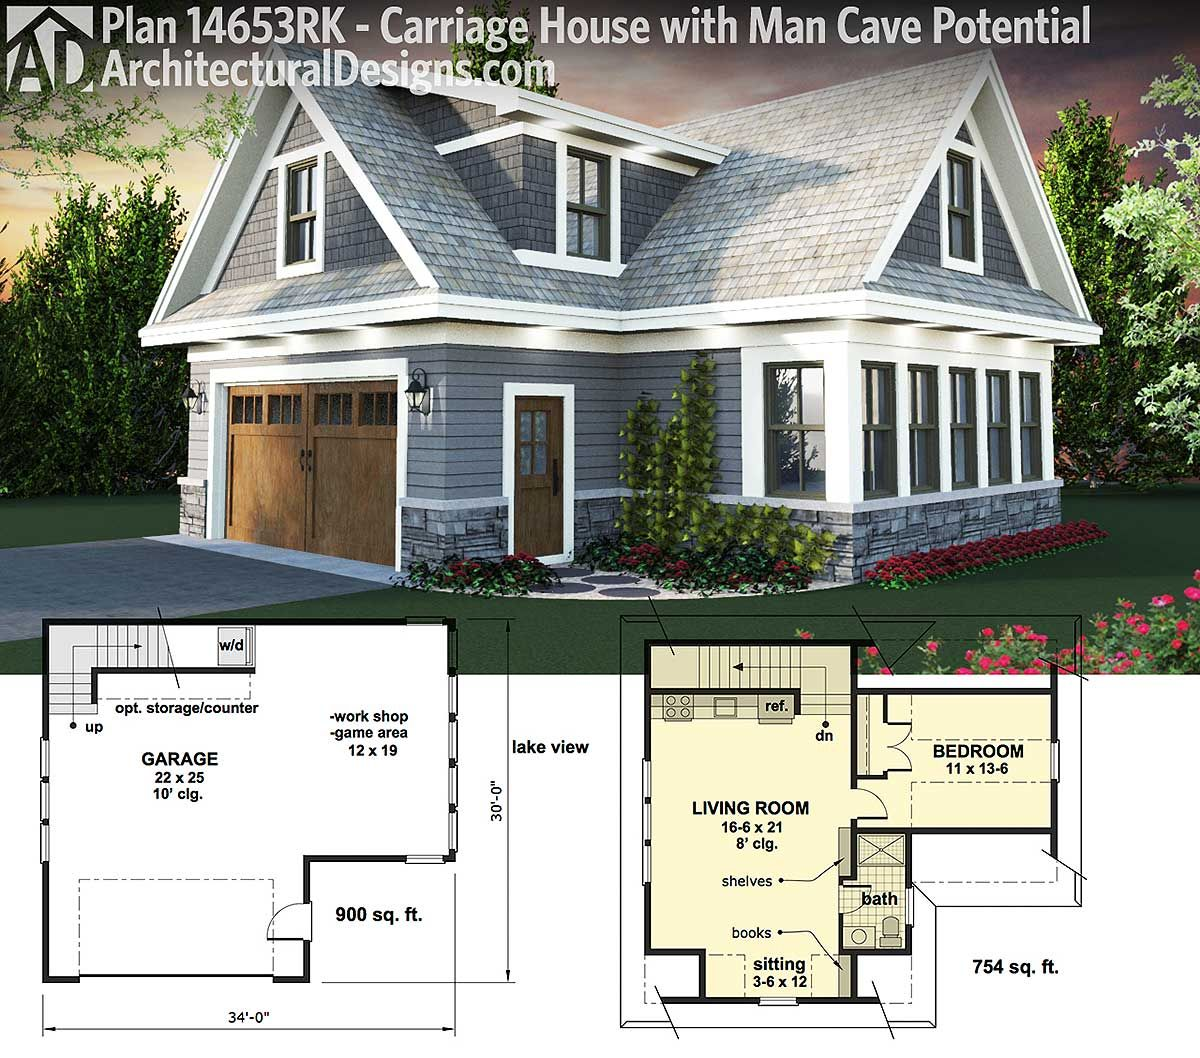 Plan 14653rk carriage house plan with man cave potential for 3 car garage cost per square foot